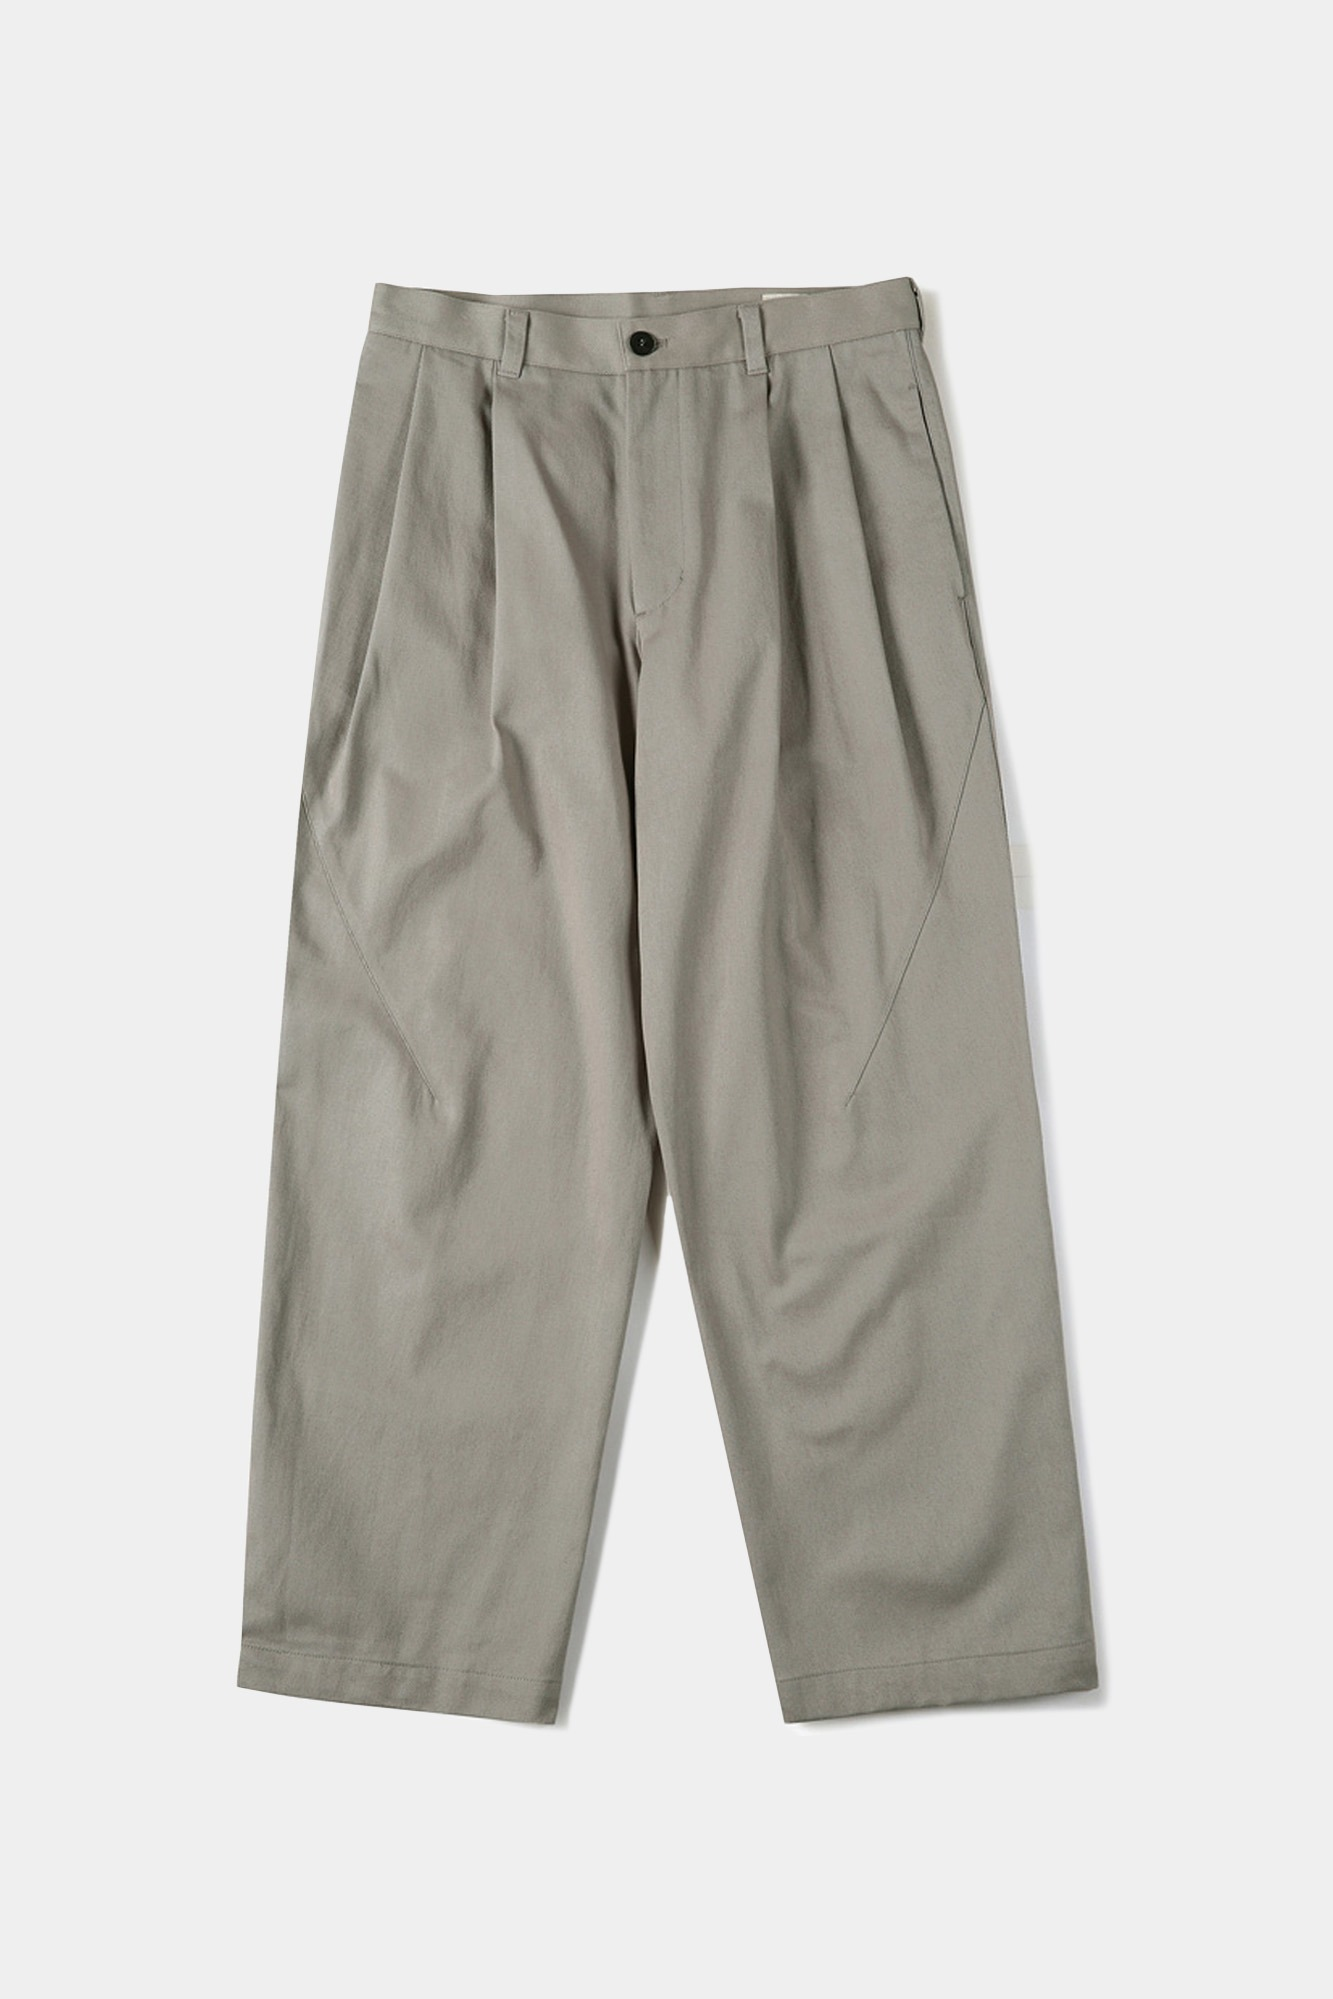 "SHIRTER Two Tuck Jar Pants ""Sand Beige"""